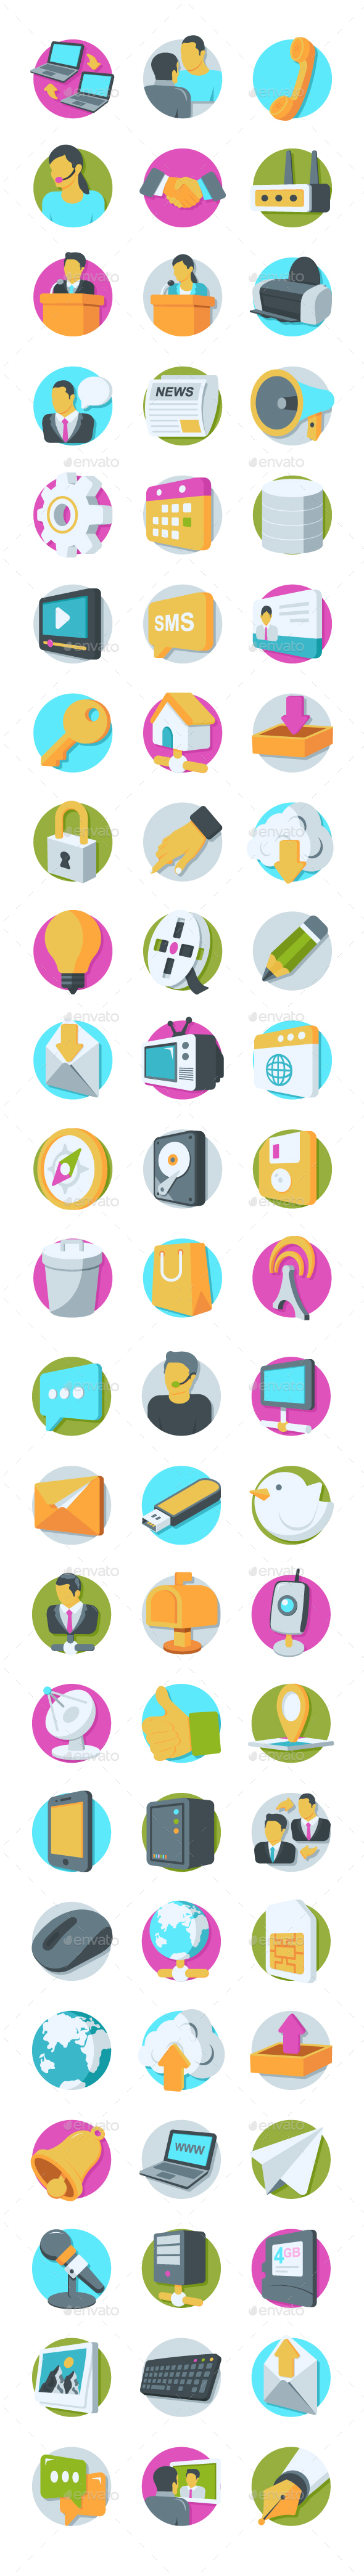 69 Network and Communication Icons - Icons